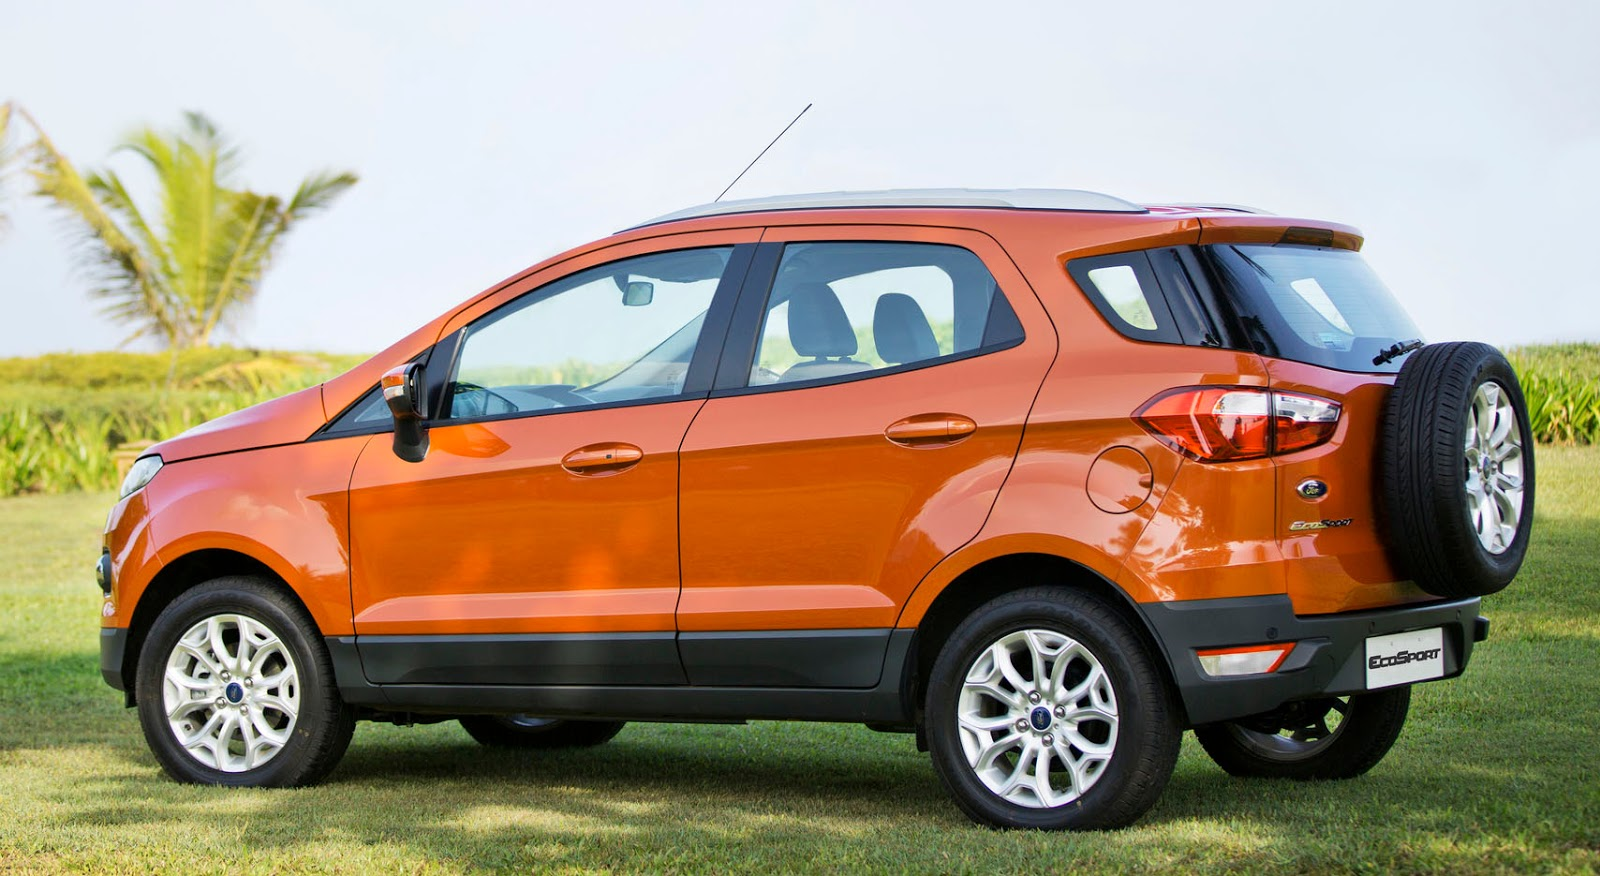 FORD ECOSPORT DIESEL 15 AMBIENTE SUV PRICES REVIEWS SPECIFICATIONS PHOTOS INTERIORS EXTERIORS